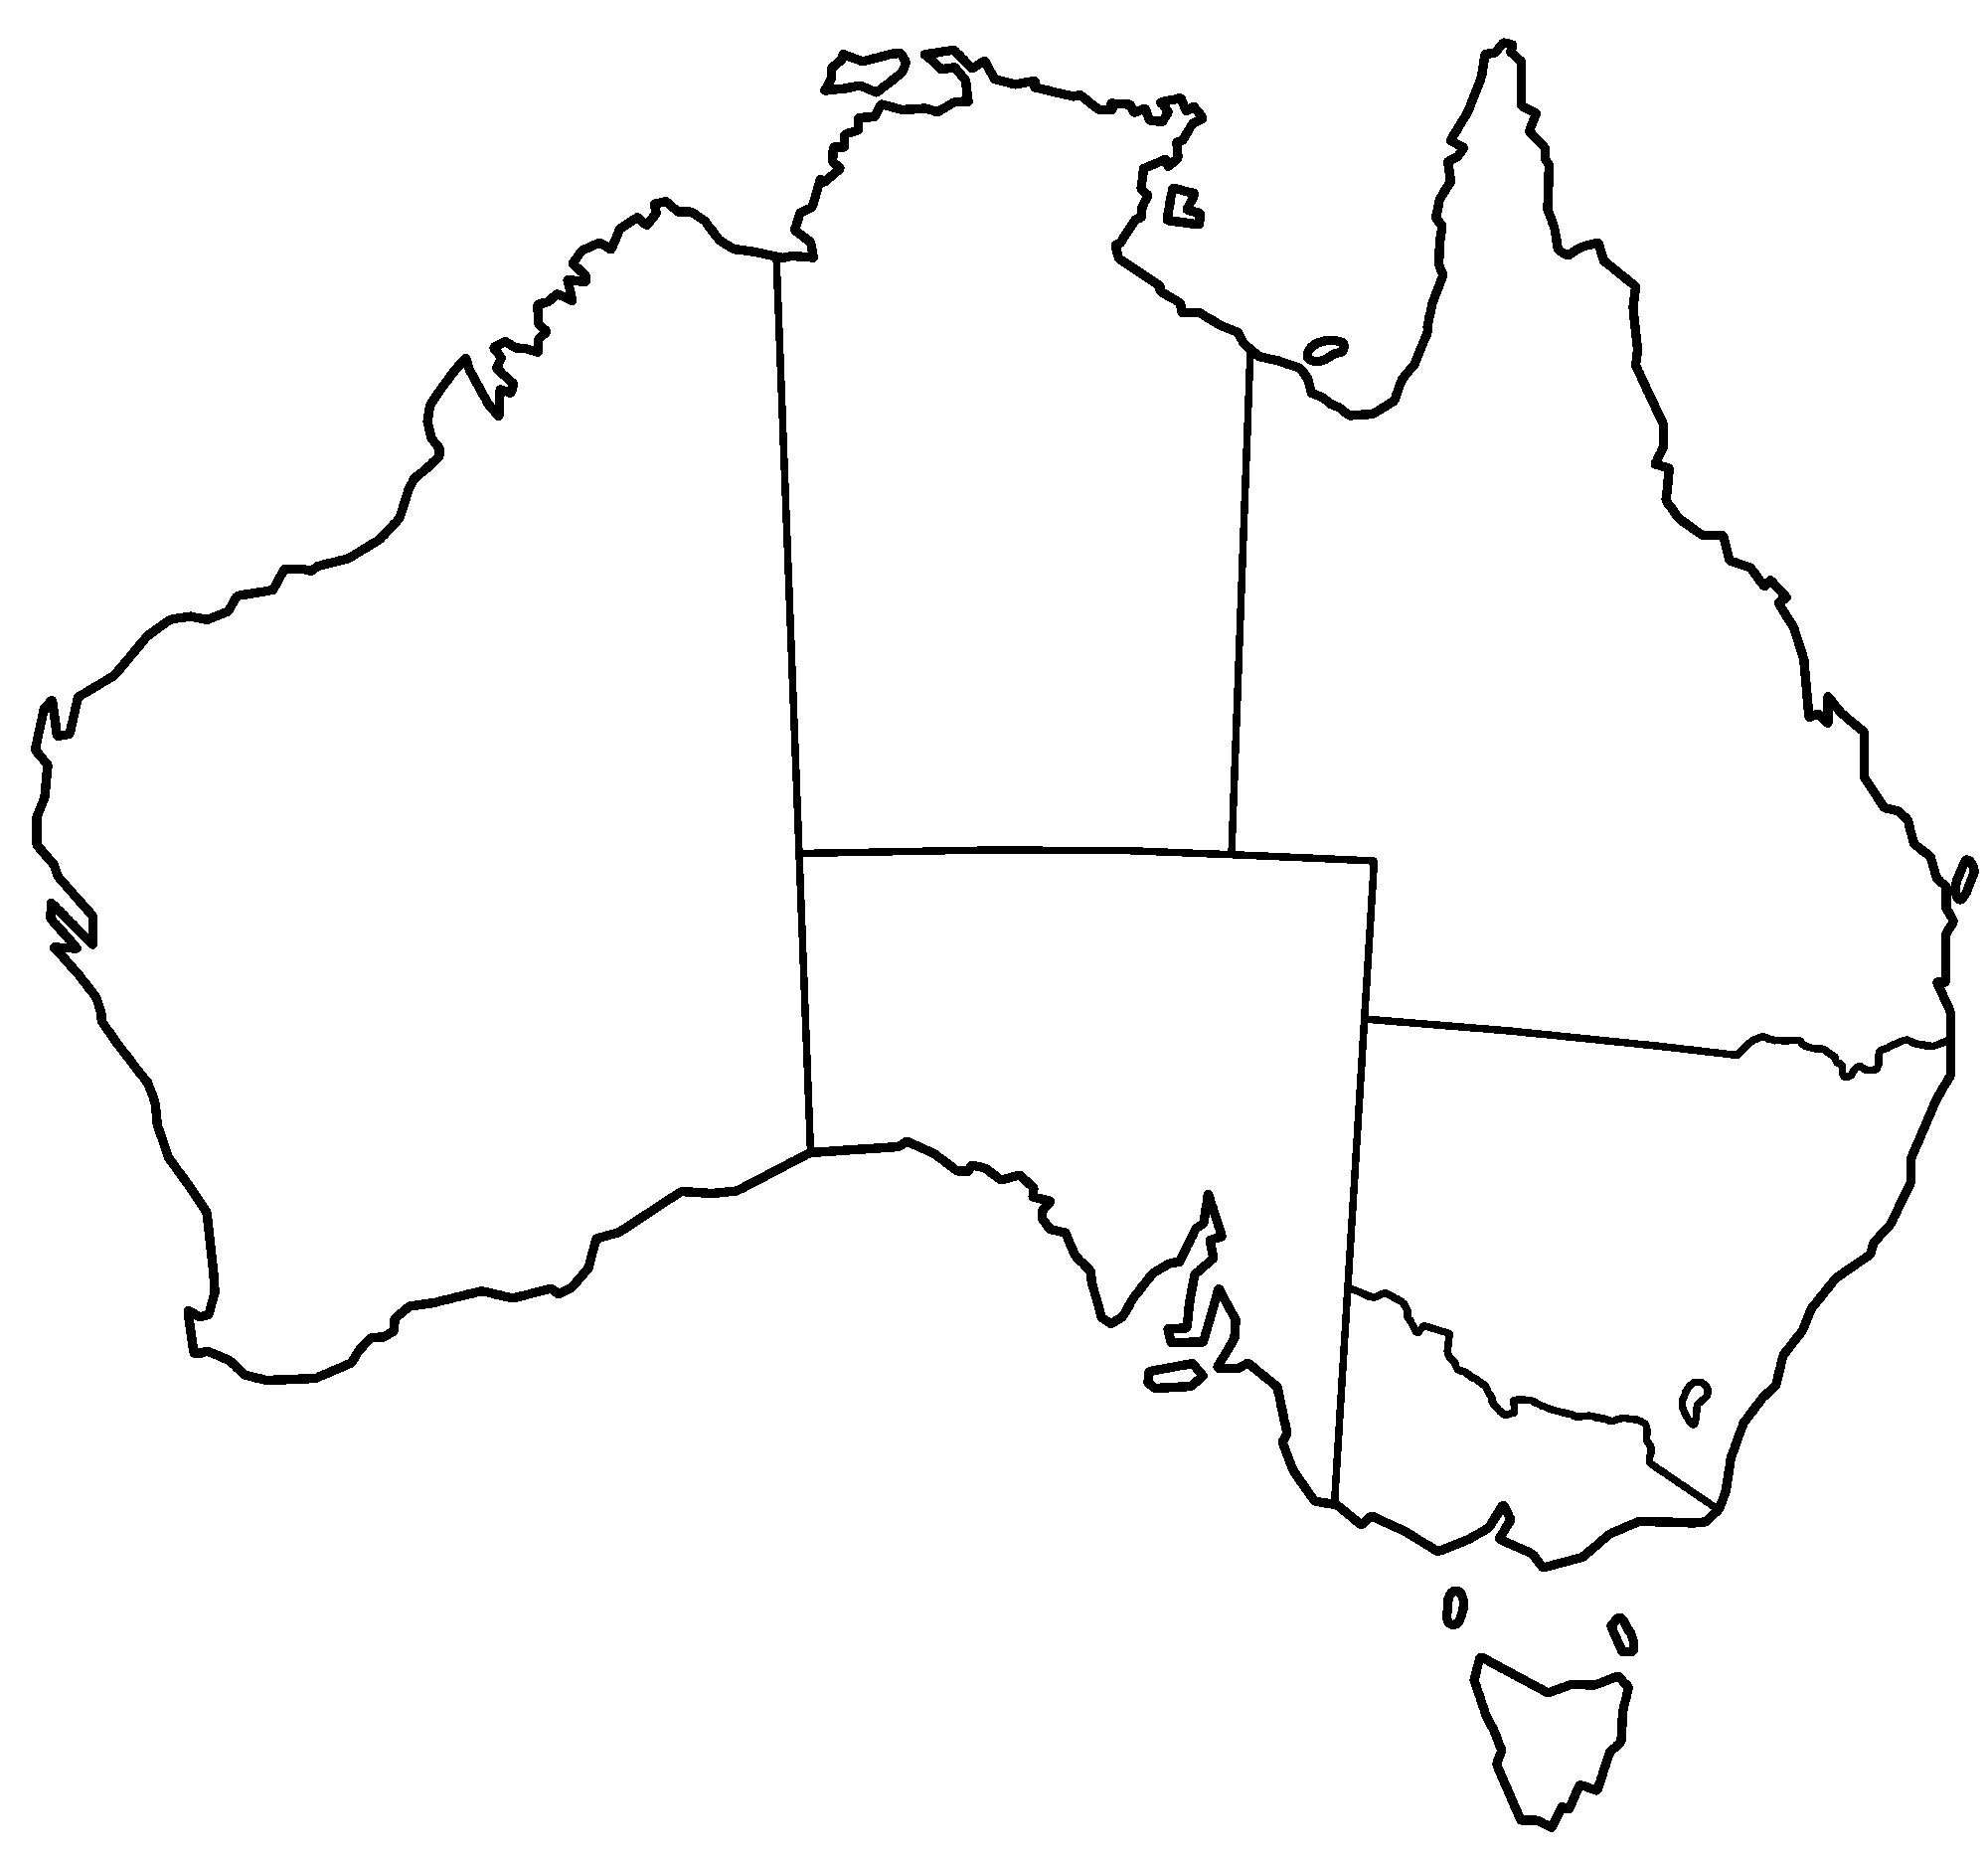 BlankAustraliamaps Thread Blank Australia Map Funny - Us map with state lines